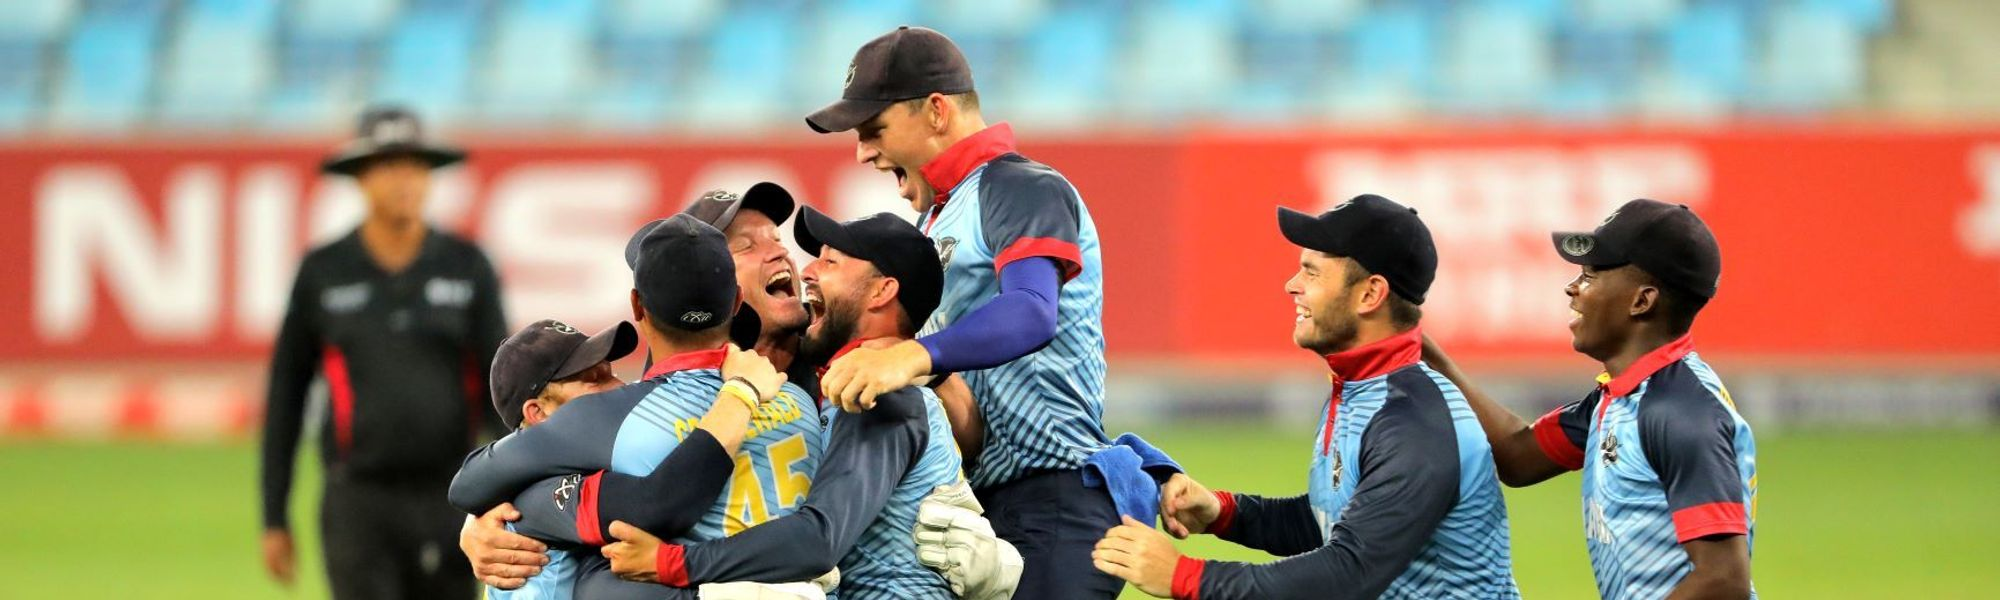 2-Namibia go to the semi's and qualify for the ICC T20 world cup in Australia